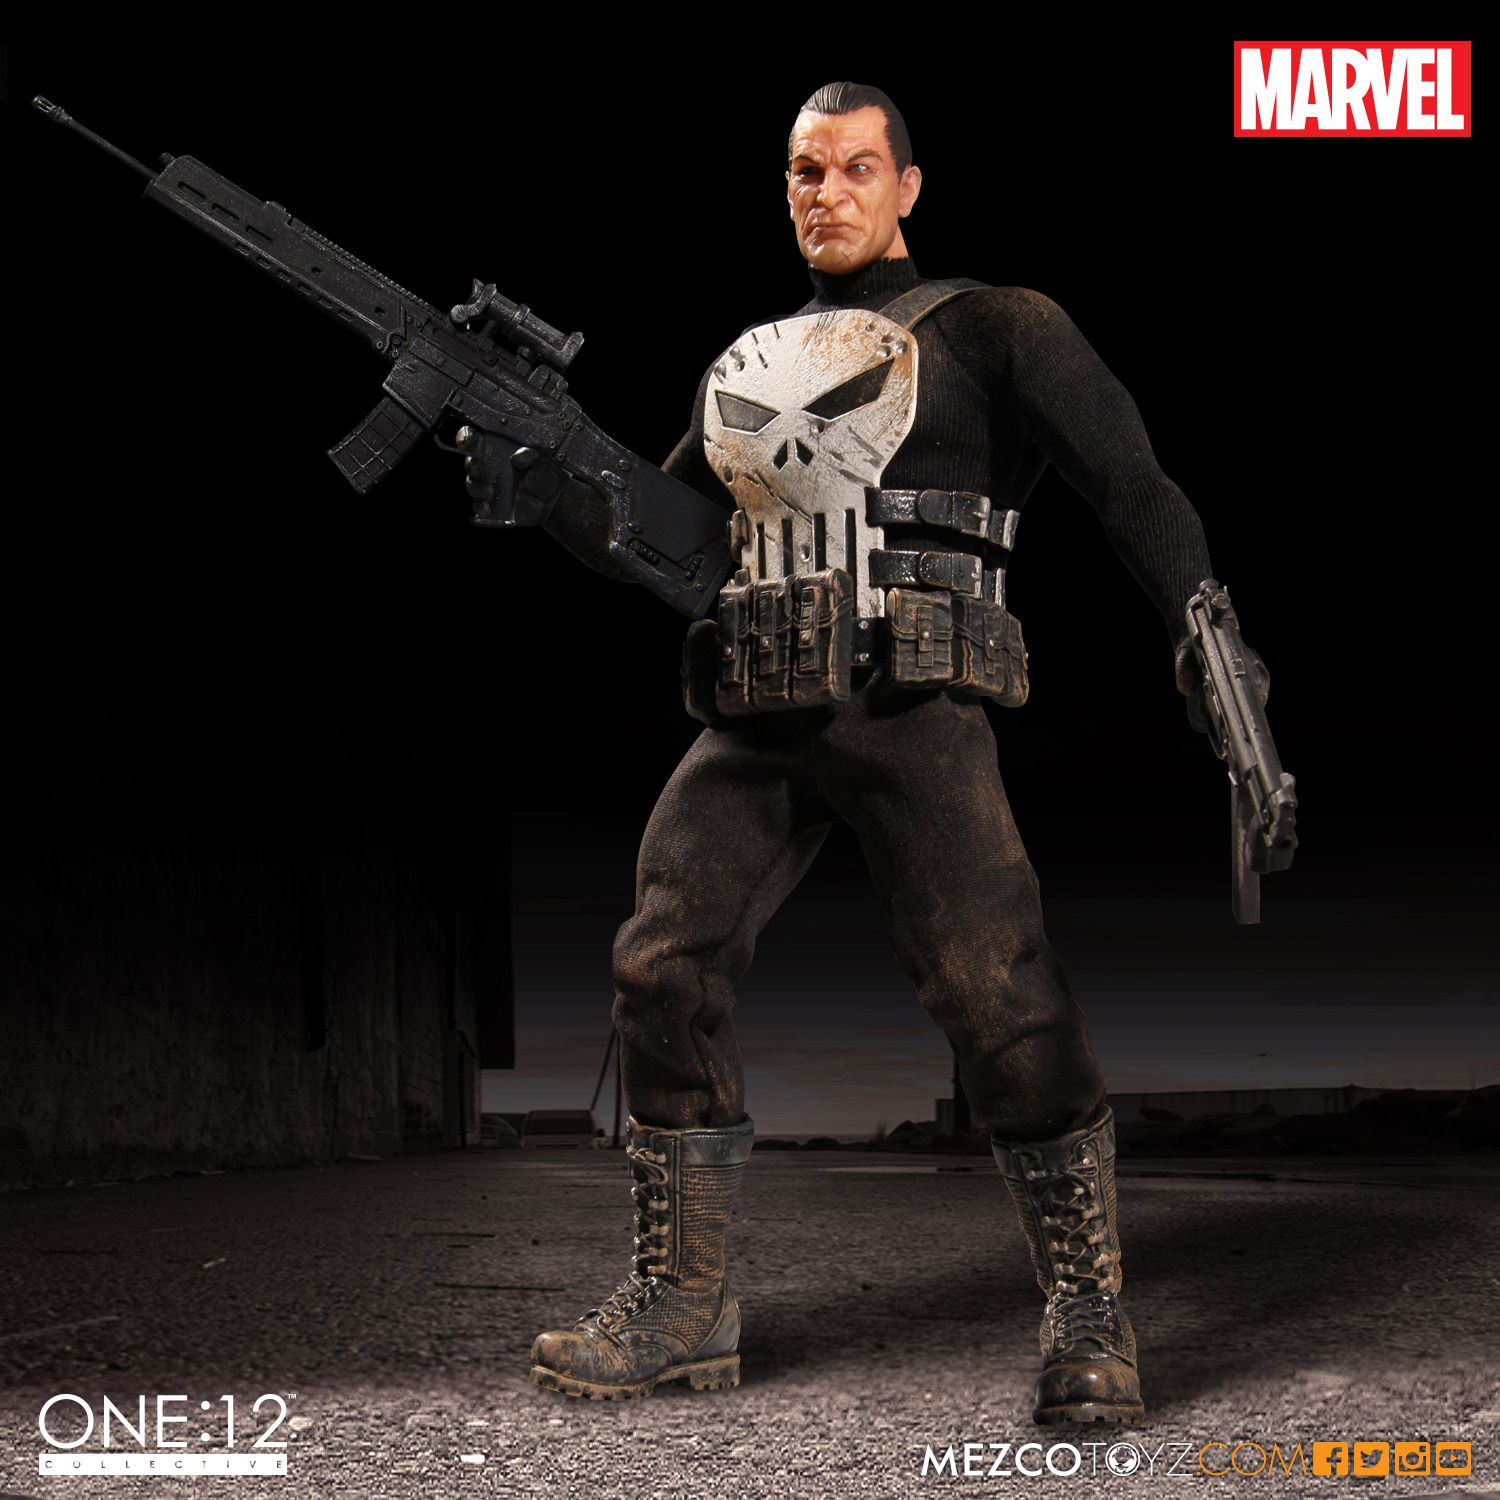 Mezco Punisher One 12 Collective Figure Up For Order